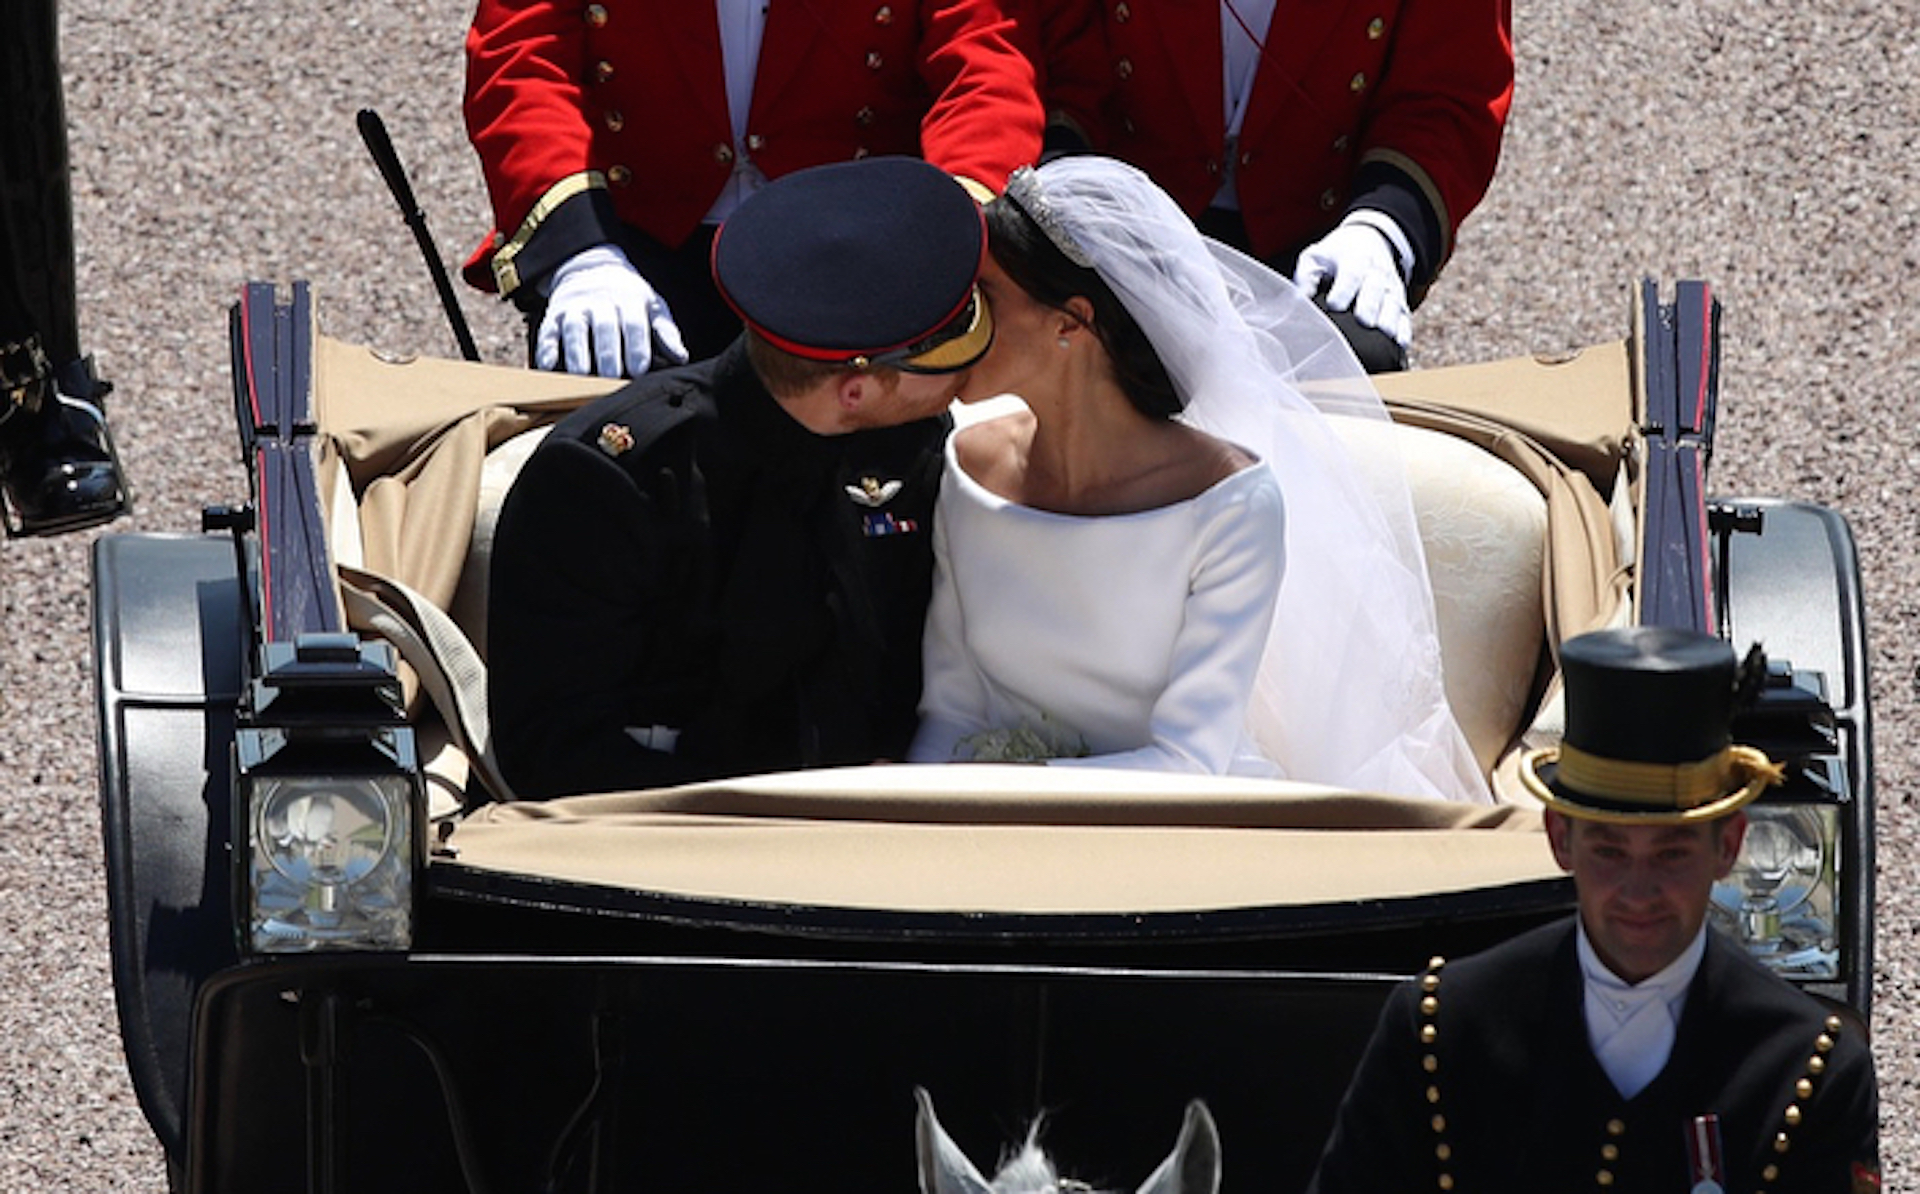 https://s3.amazonaws.com/arc-wordpress-client-uploads/infobae-wp/wp-content/uploads/2018/05/19181537/GENTE-boda-real-principe-harry-meghan-markle-carruaje-beso.jpg